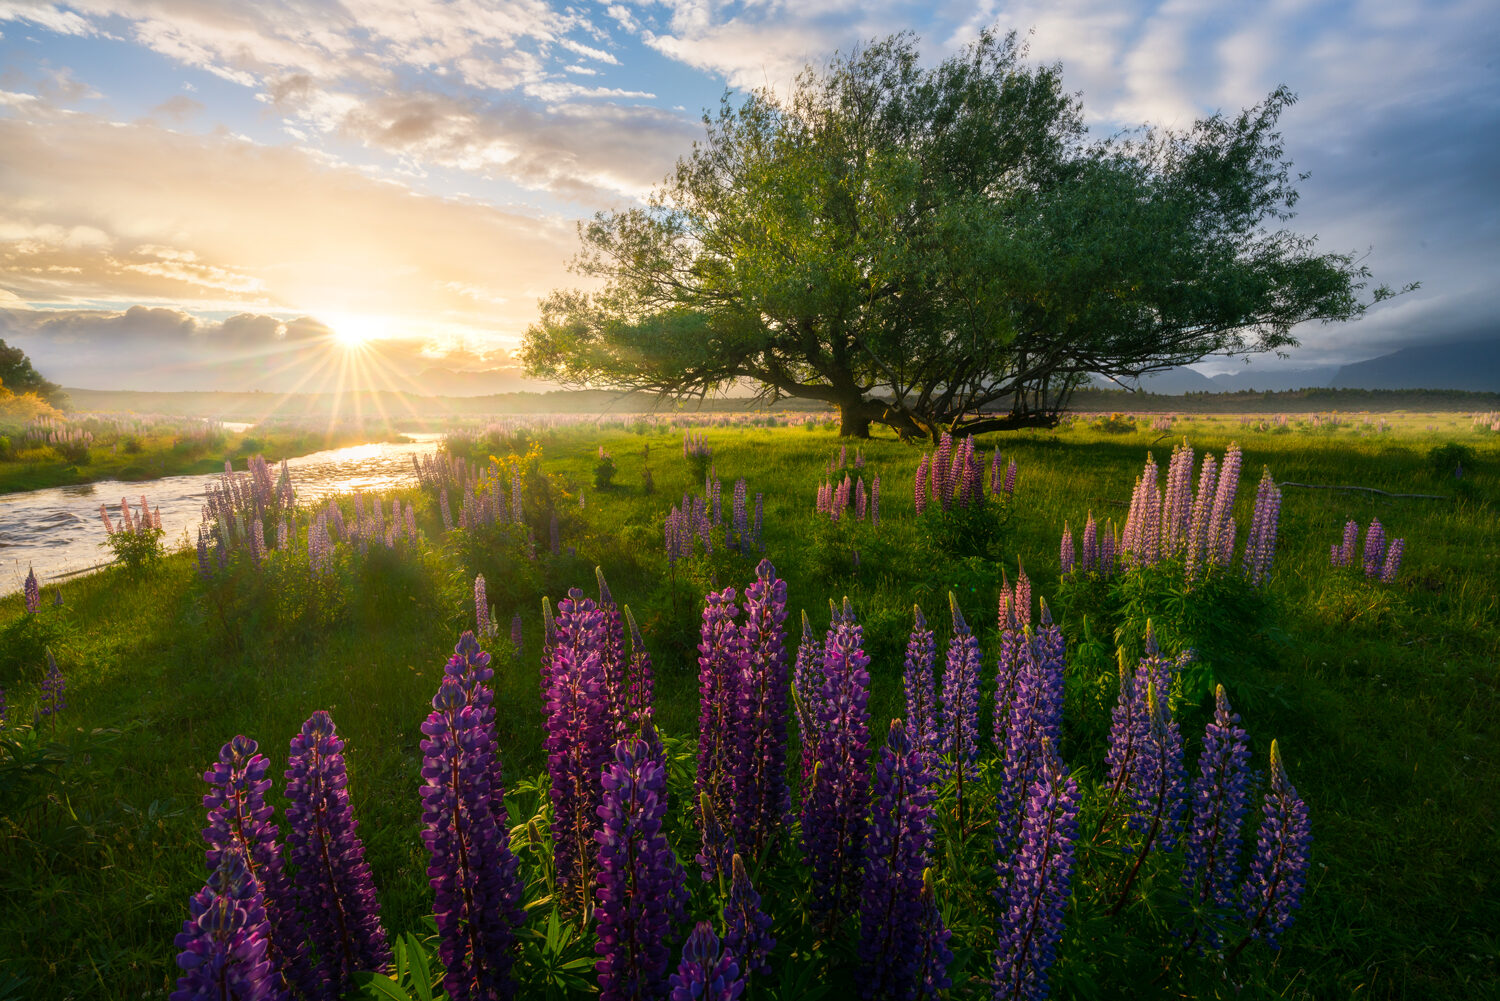 Wild lupins and tree, Te Anau New Zealand